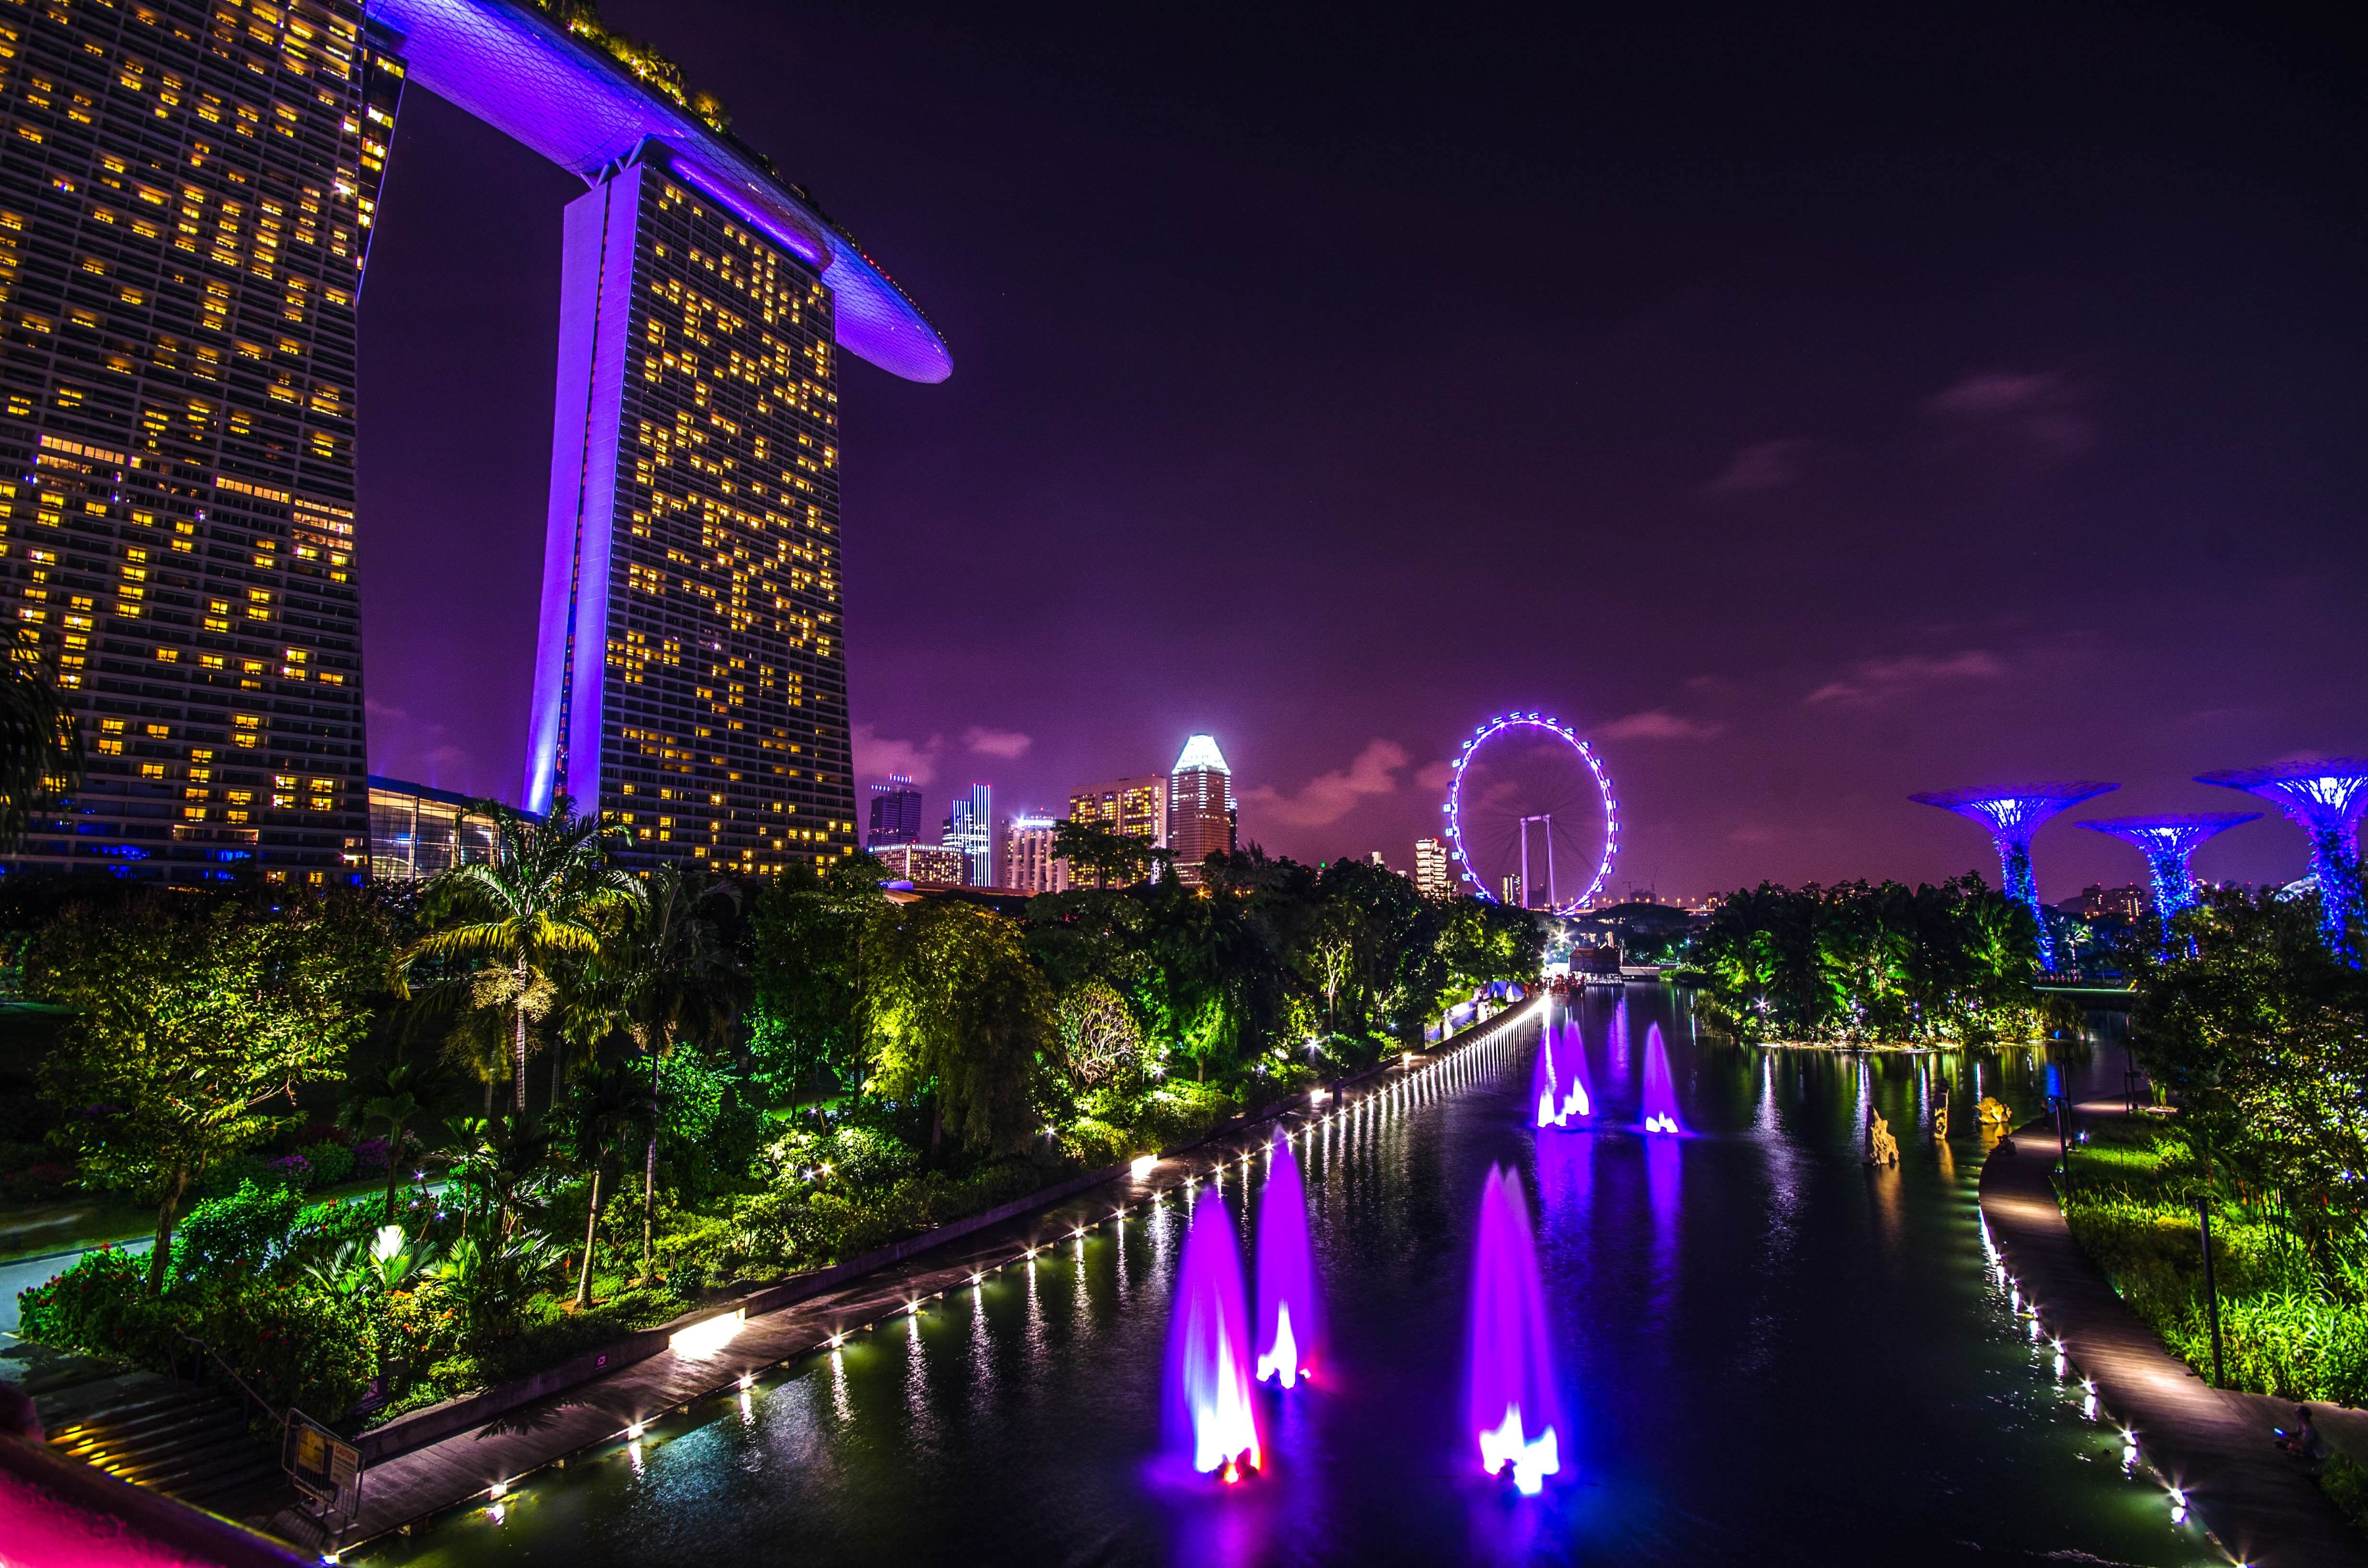 Marina bay of Singapore. © Pixabay